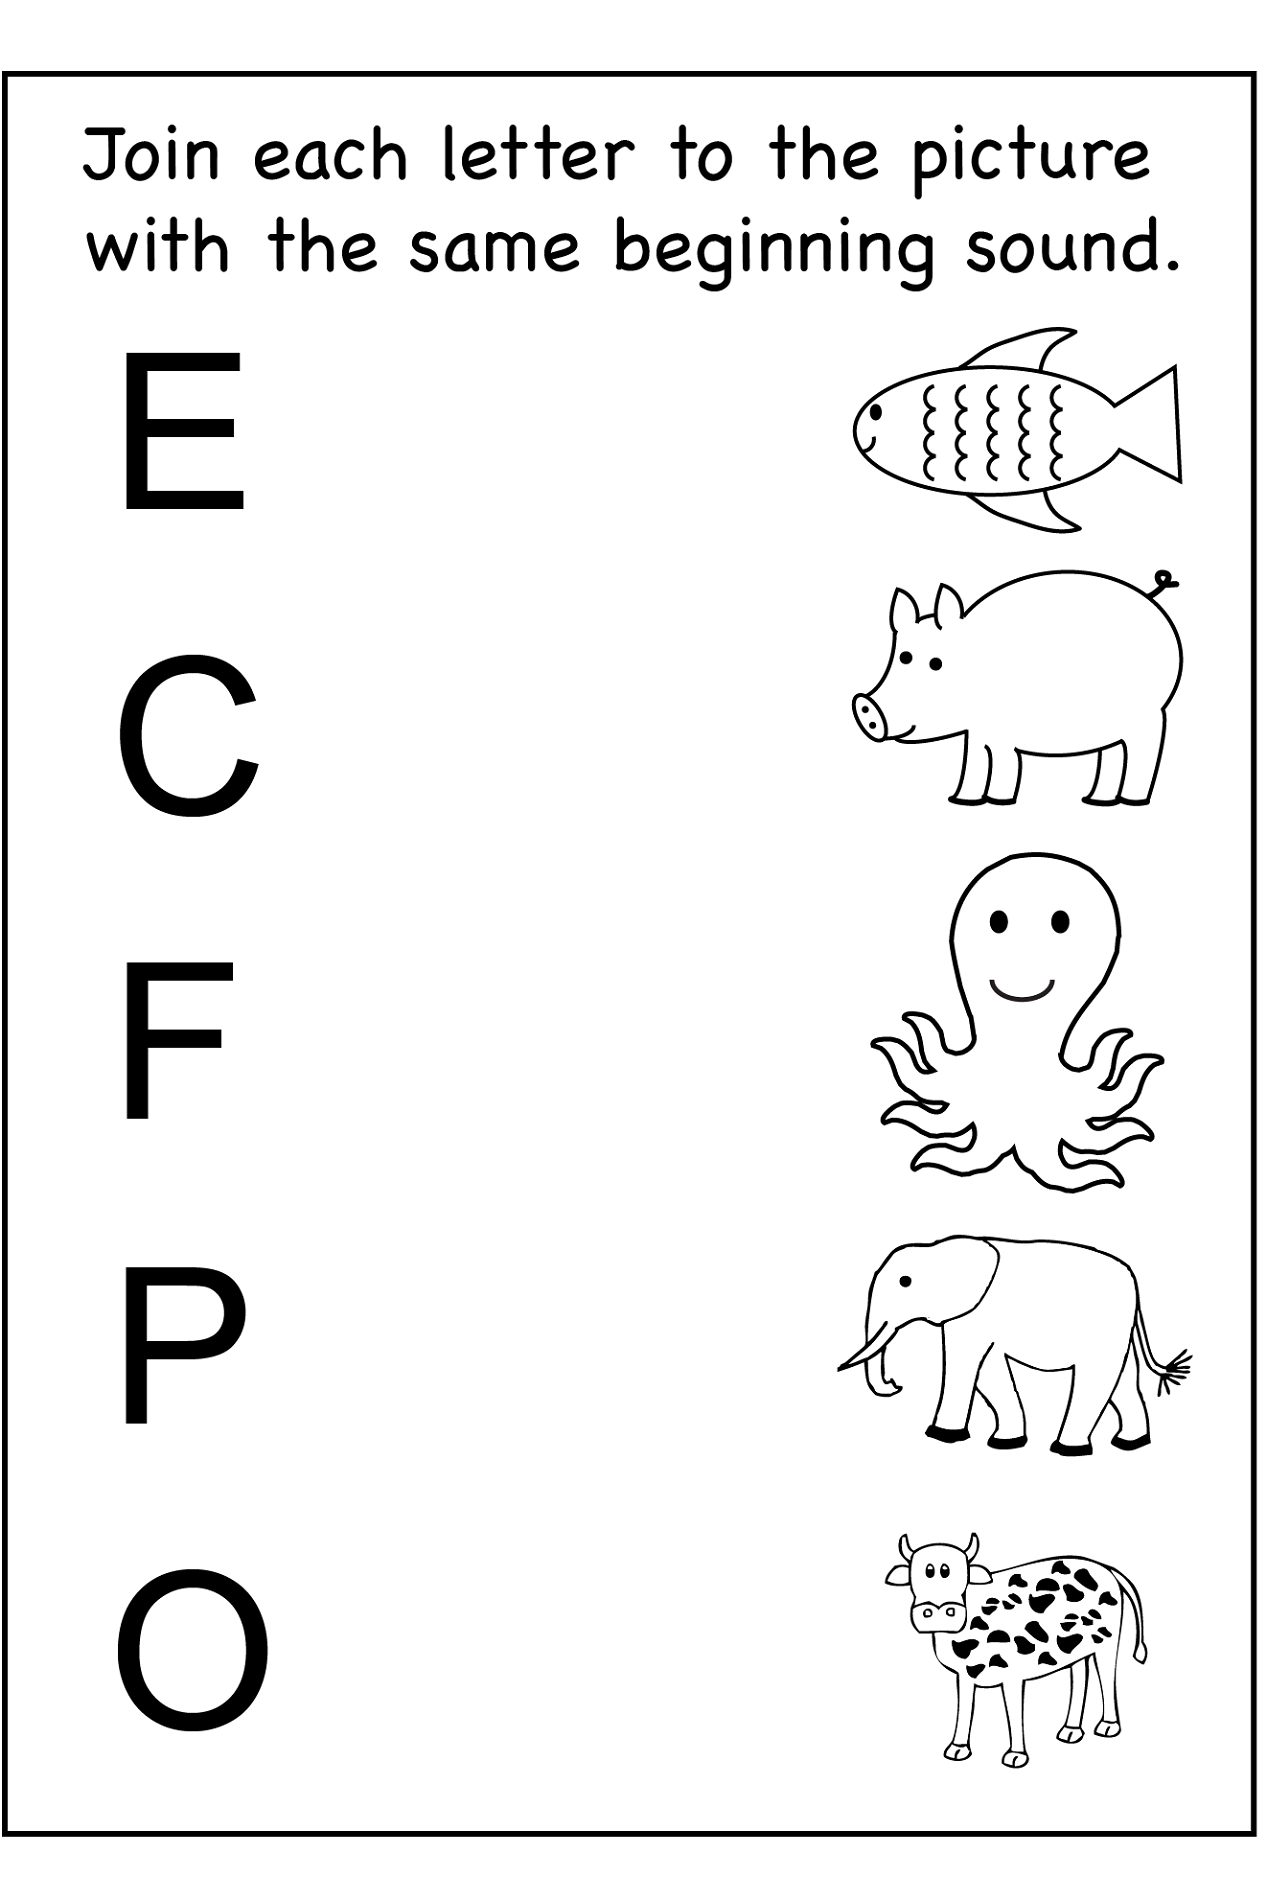 Printables Worksheets Fun : Printable fun kids worksheets activity shelter